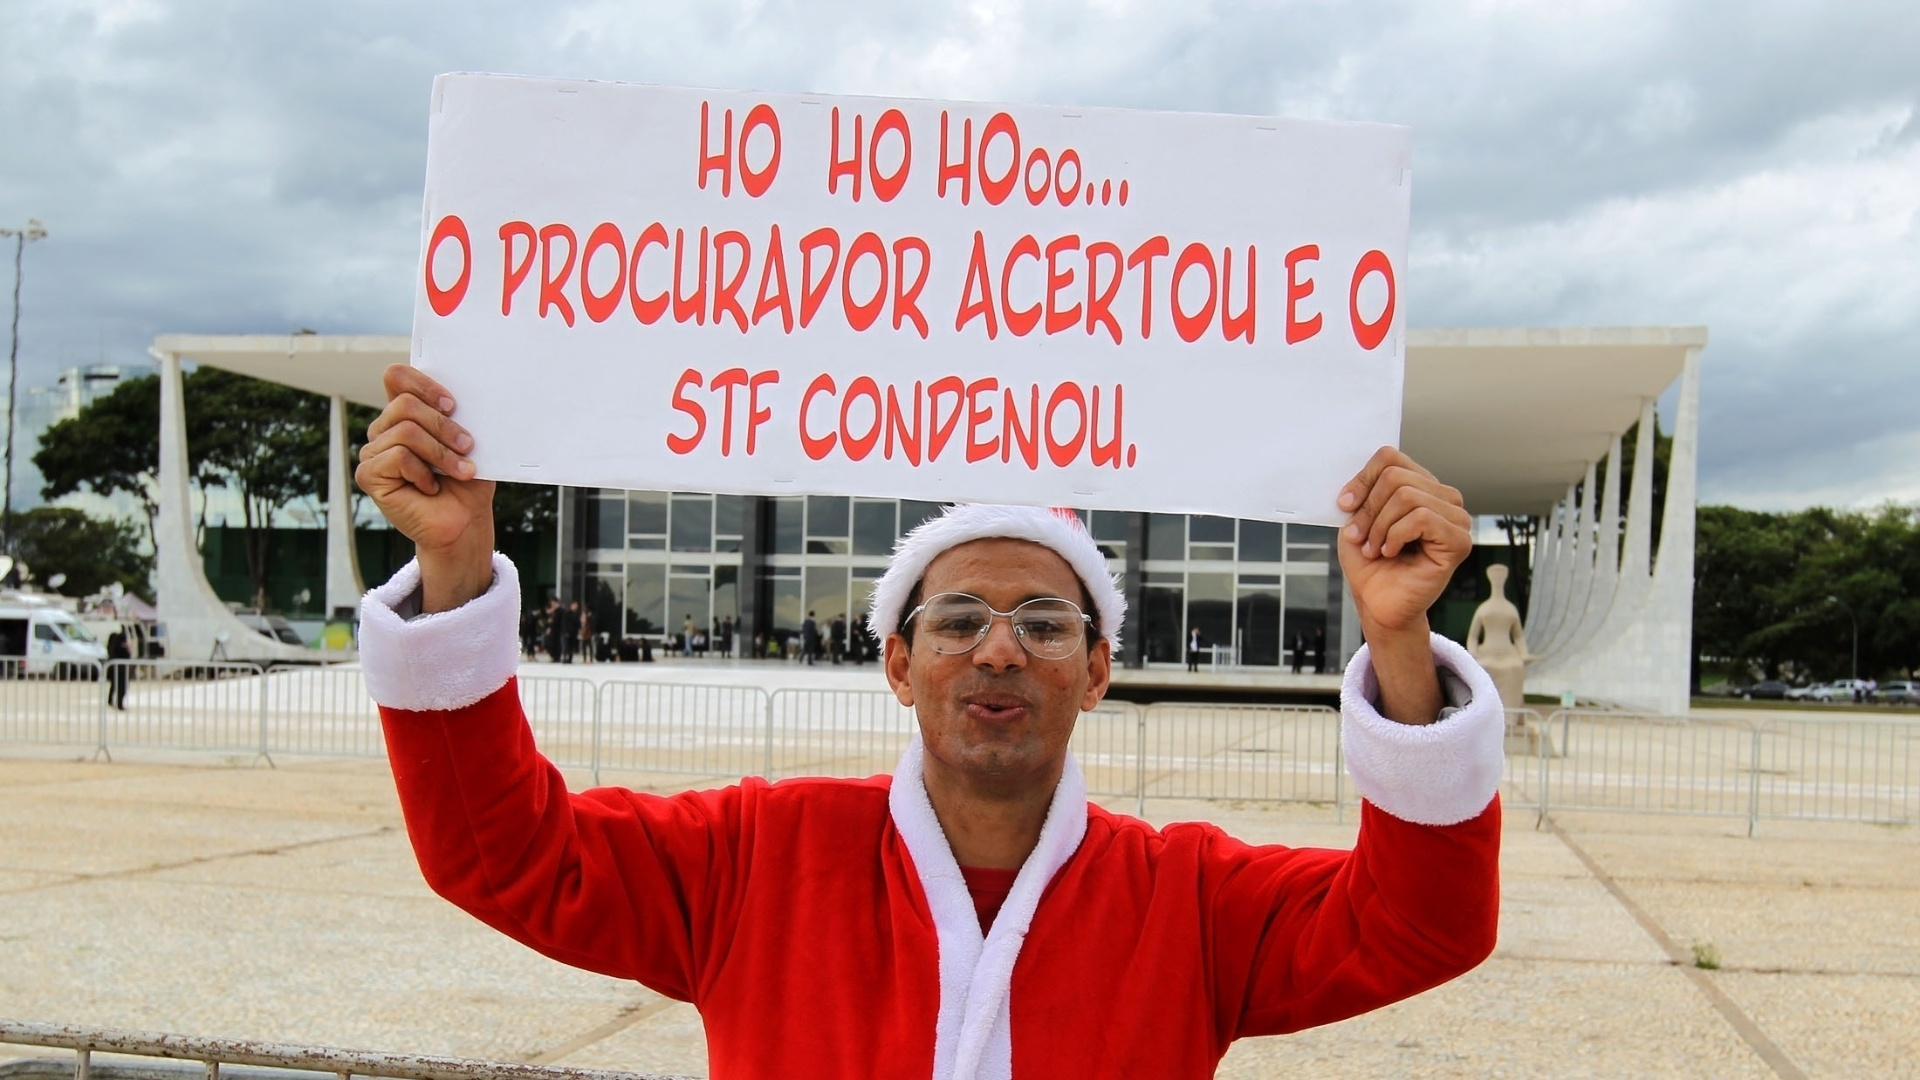 14.nov.2012 - Manifestante vestido de Papai Noel carrega placa do lado de fora do Supremo Tribunal Federal, durante julgamento do mensalo. 